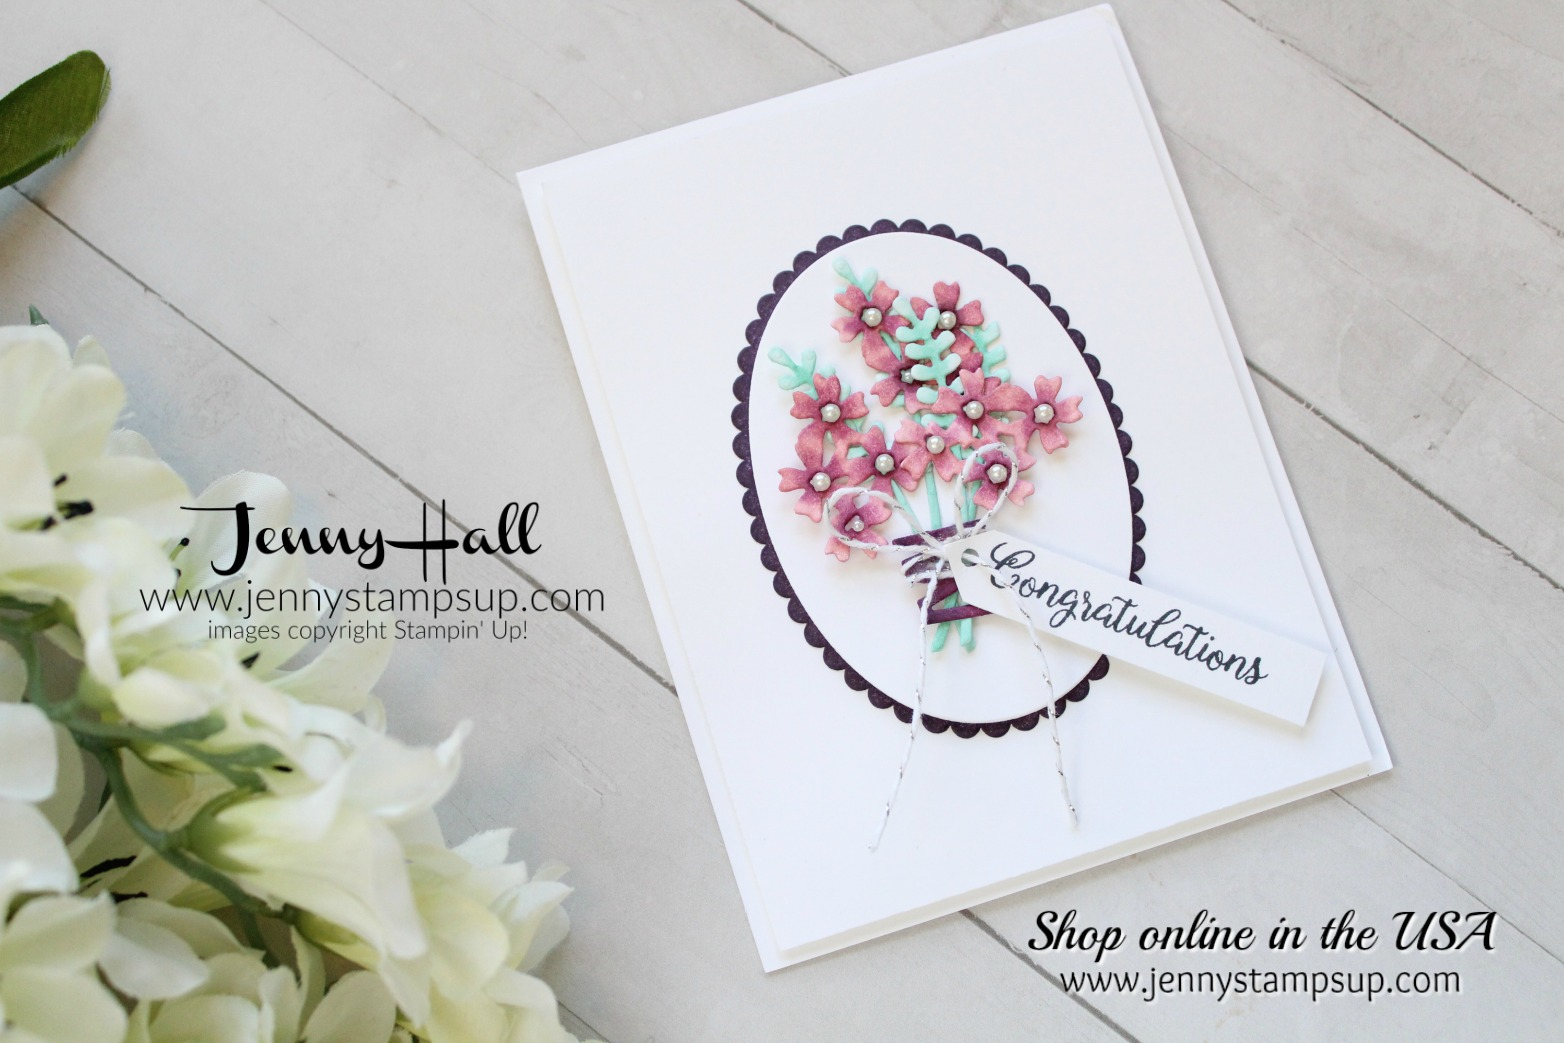 Beautiful Bouquet hand colored card by Jenny Hall at www.jennystampsup.com for #stampinup #cardmaking #videotutorials #scrapbooking #cascards #cleanandsimplecards #beautifulbouquet #jennyhalldesign #jennystampsup #jennyhallstampinup #stamping #watercolorpainting and more!